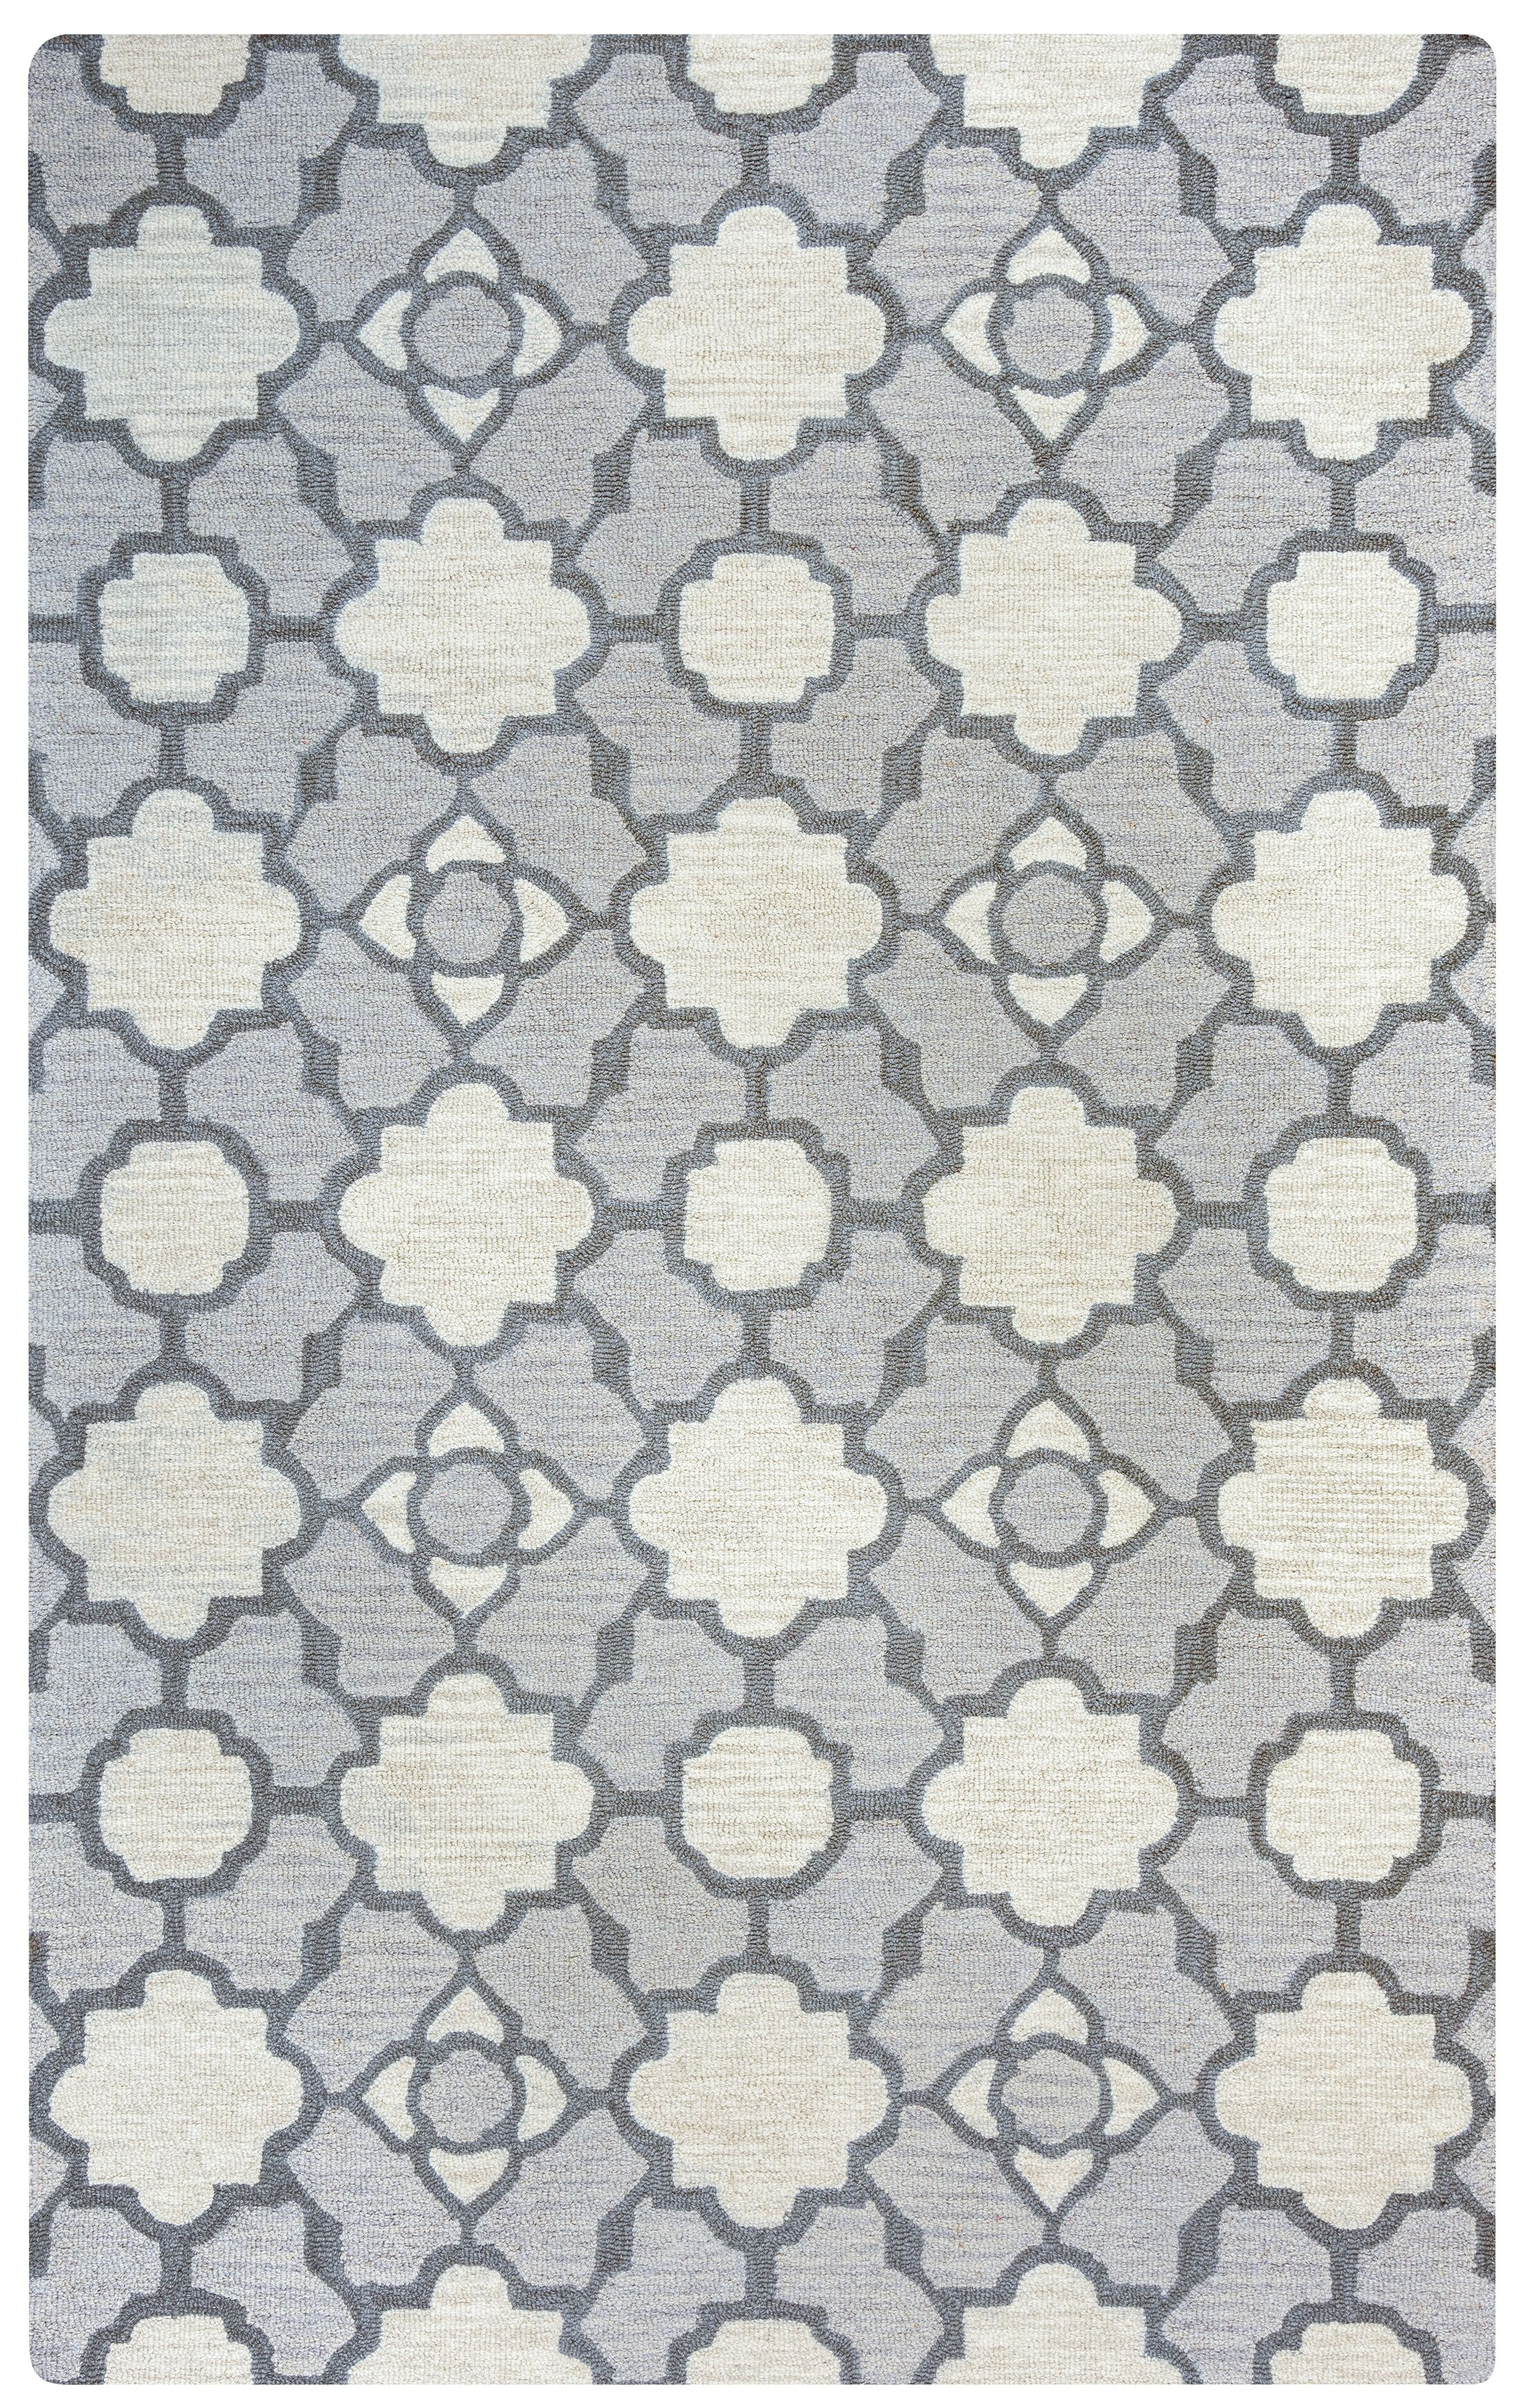 Viktualien Hand-Tufted Light Gray Area Rug Rug Size: Rectangle 8' x 10'